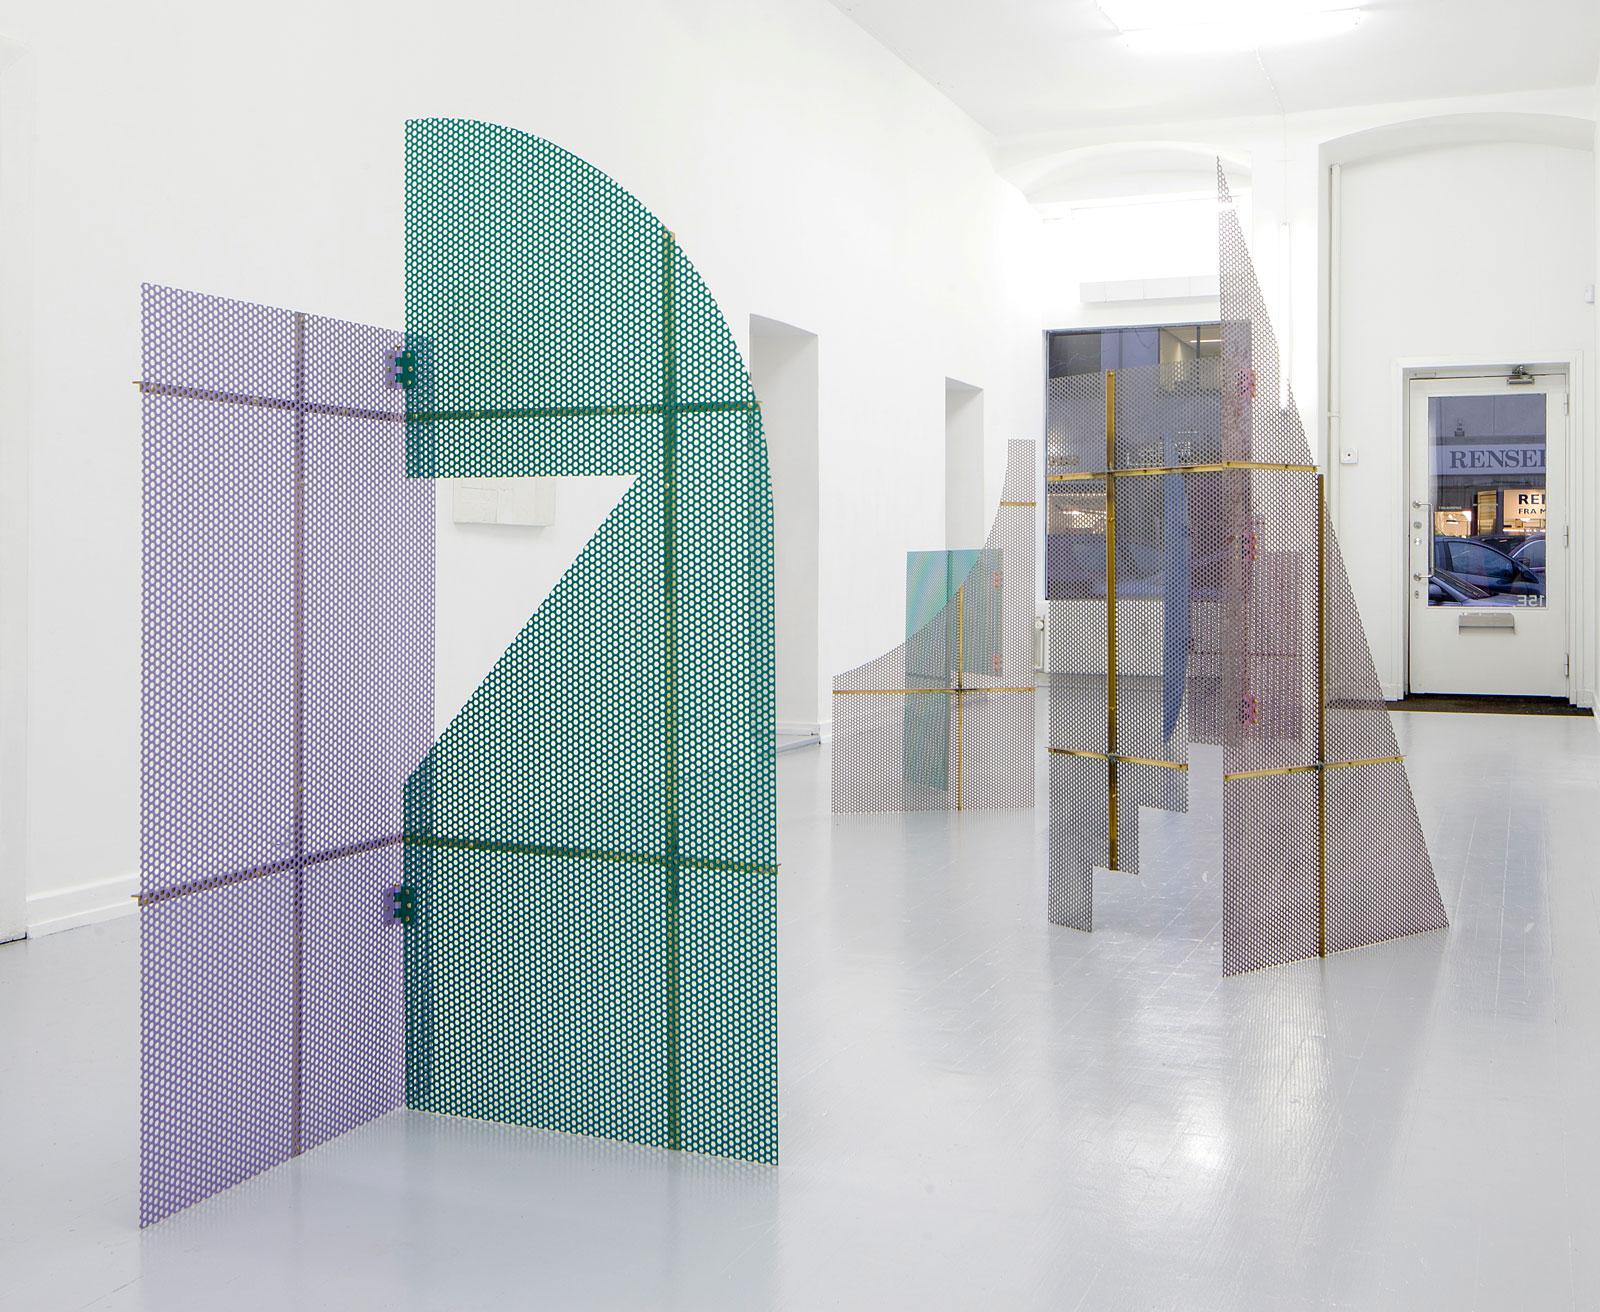 installation view of &quot;Screens &amp; Reliefs&quot;<br/>EtageProjects Kopenhagen, 2014